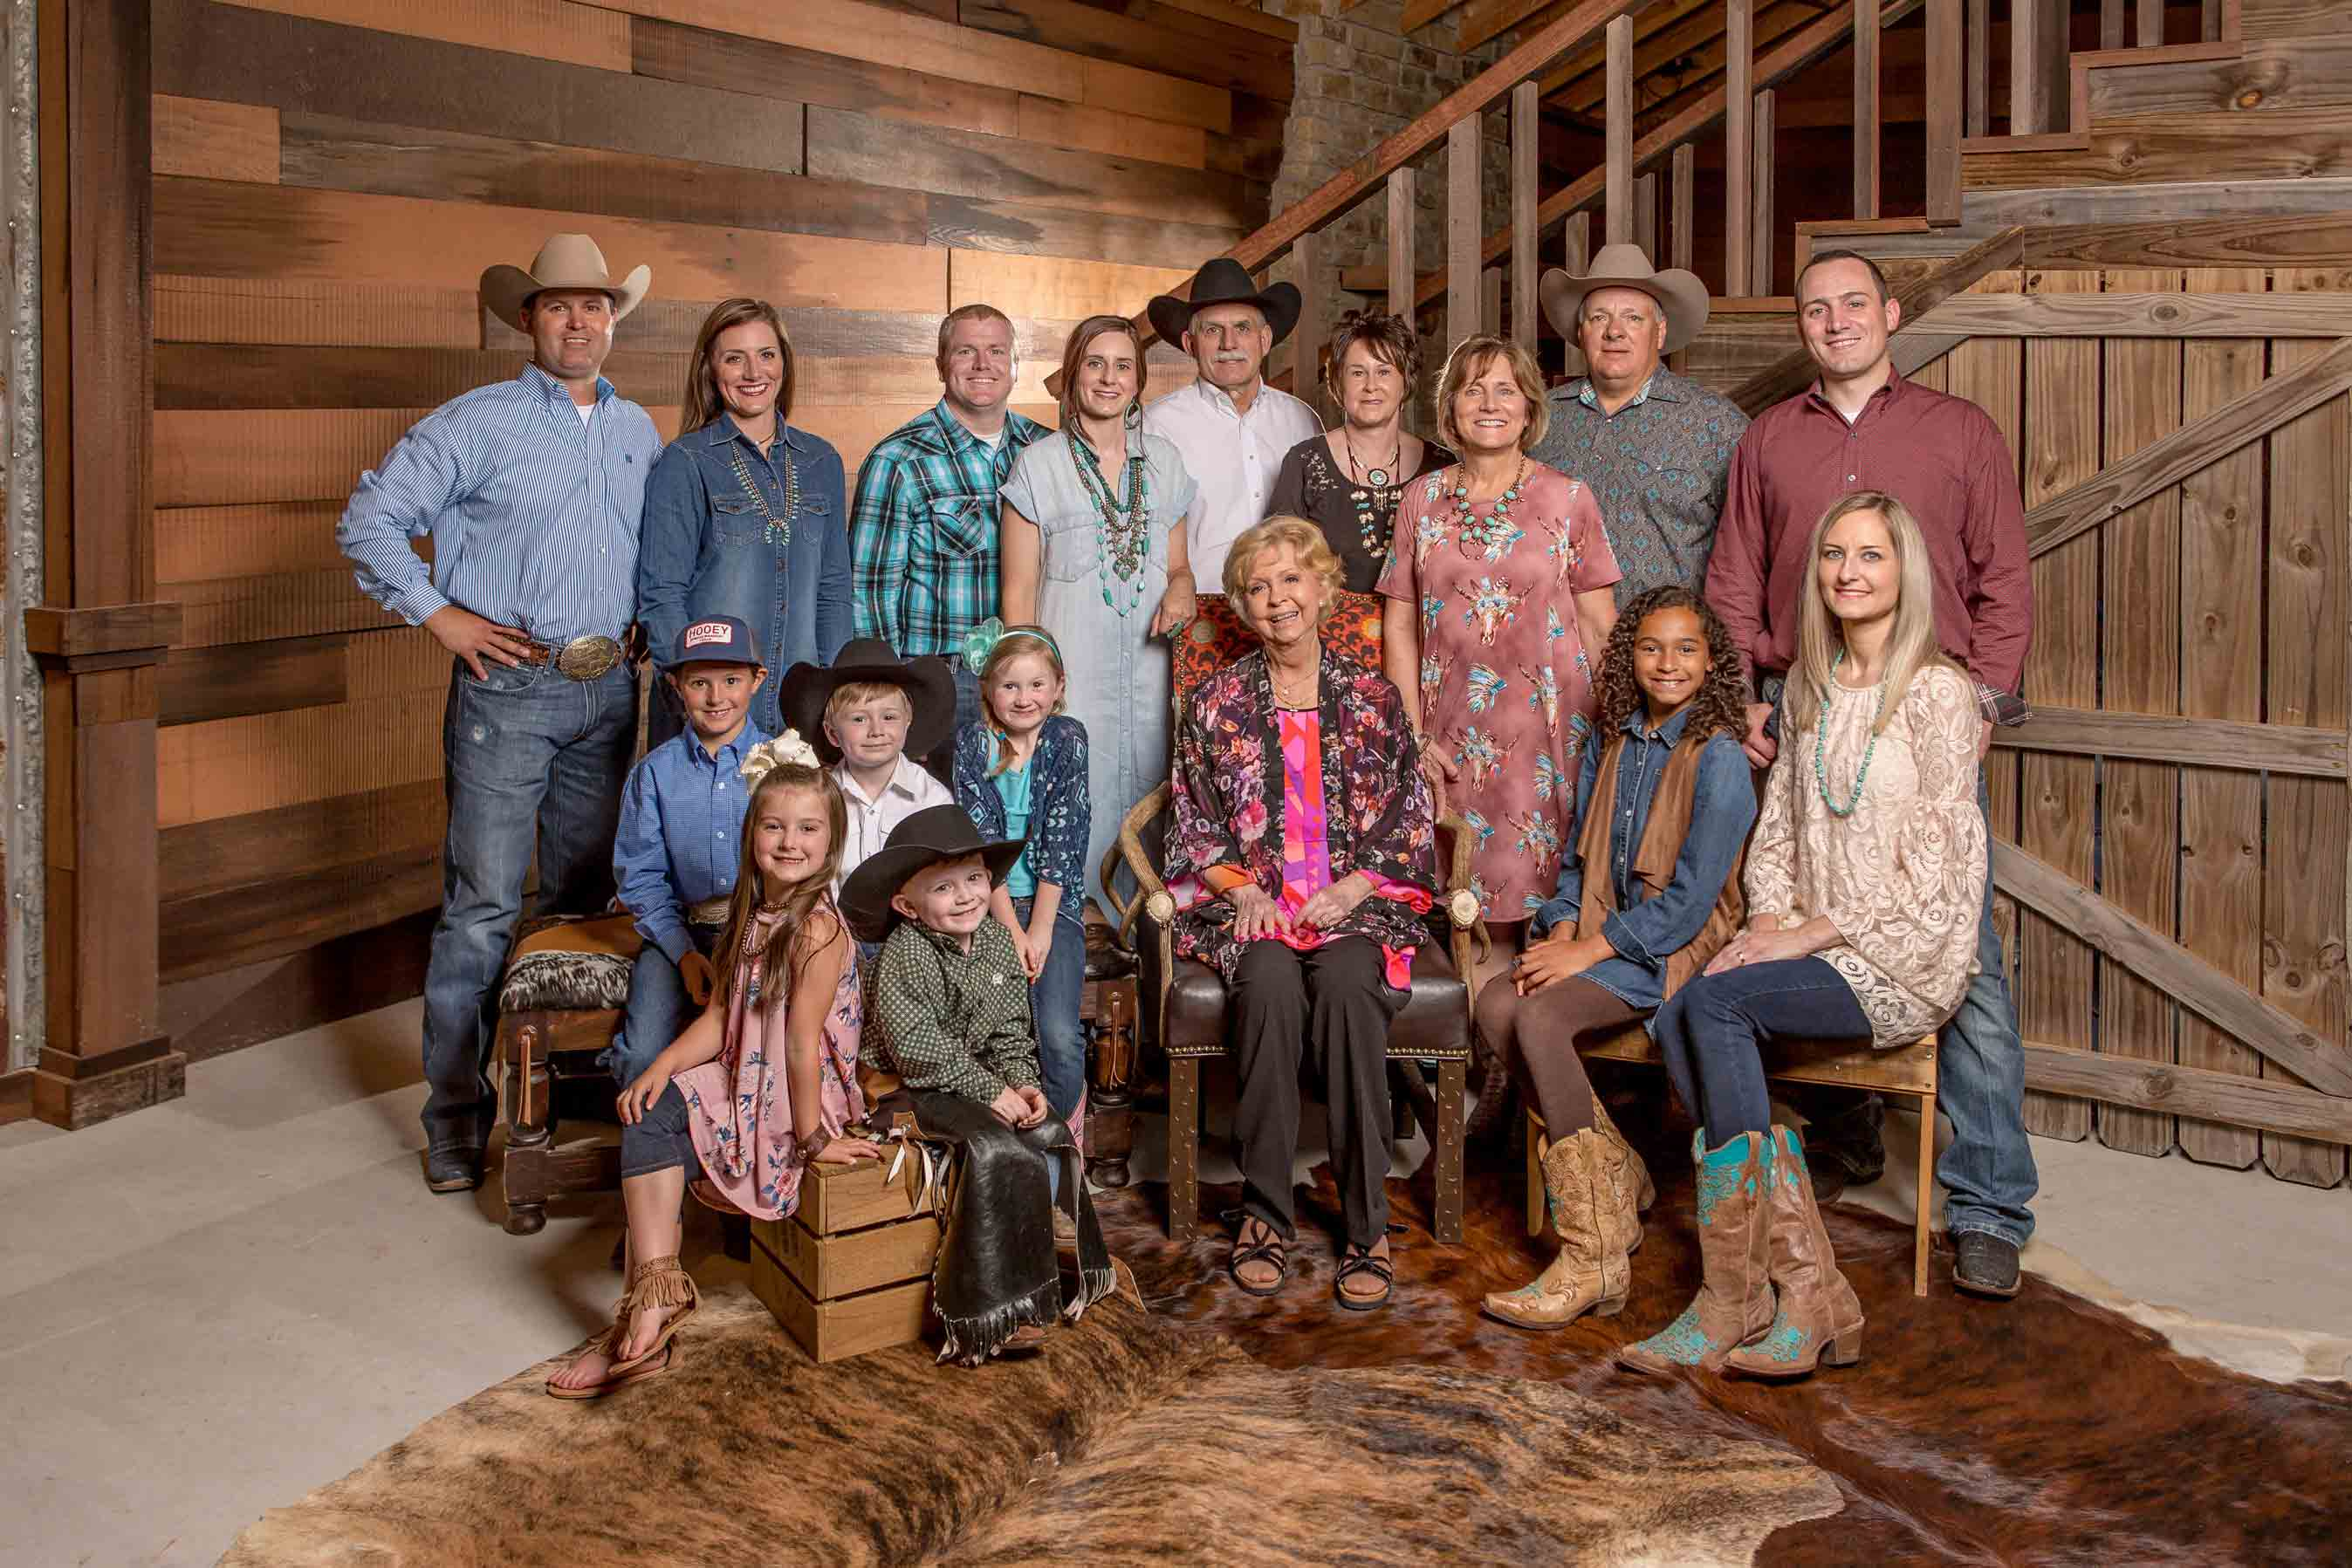 Crutcher's Western Wear provides quality western apparel and cowboy boots at affordable prices.  We are a third generation family owned and operated small business since 1977.